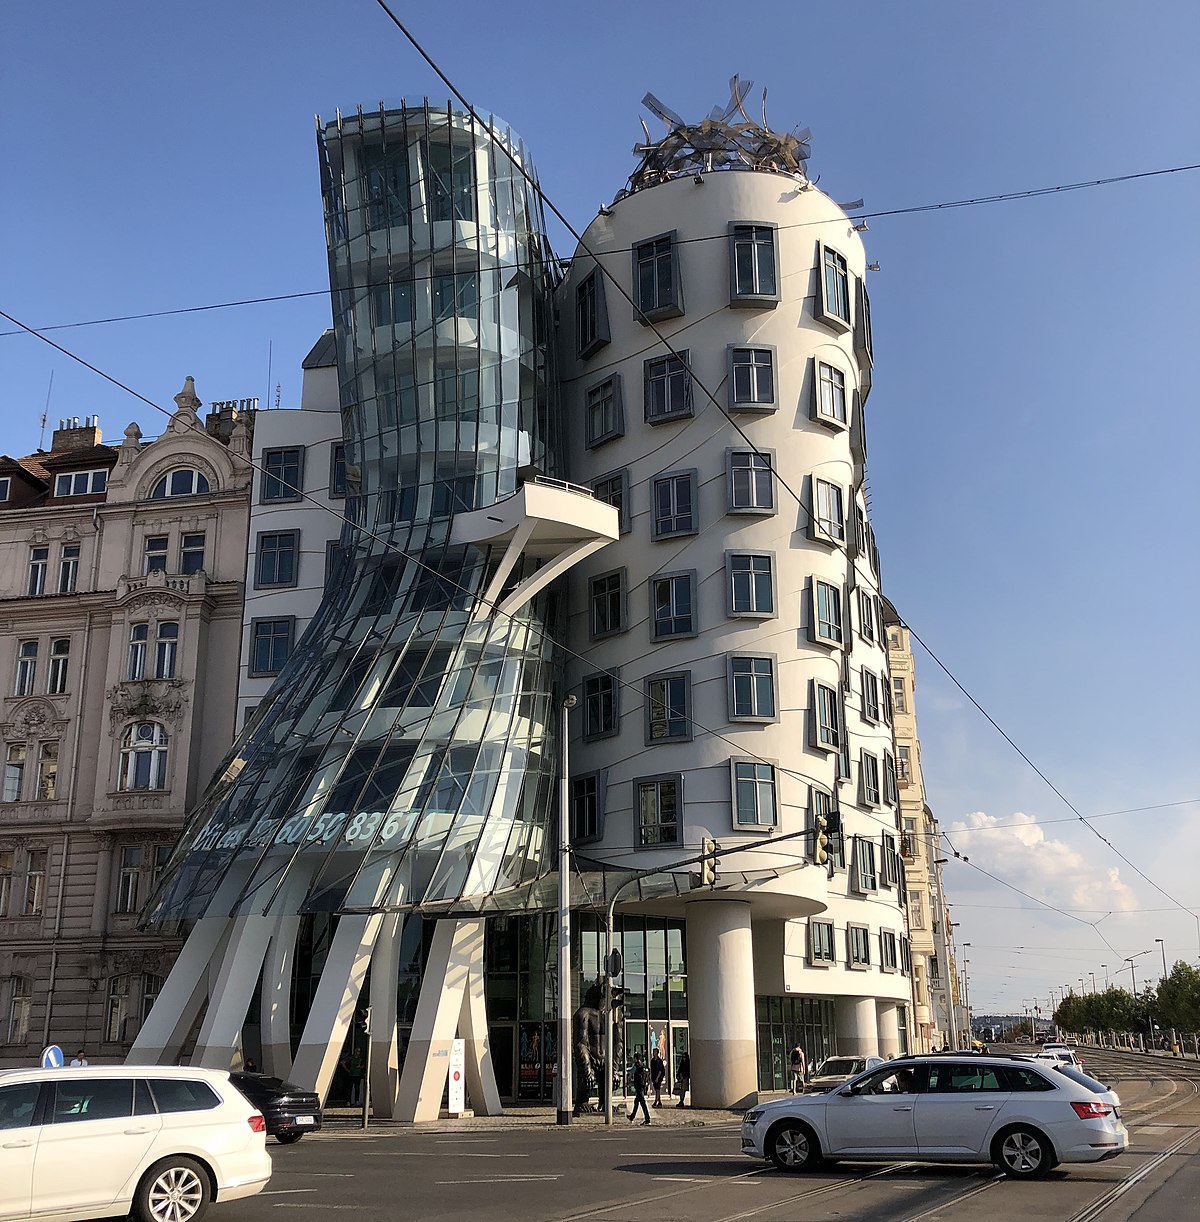 frank gehry Frank Gehry's Iconic Architectural Buildings Around The World Frank Gehrys Iconic Architectural Buildings Around The World 1